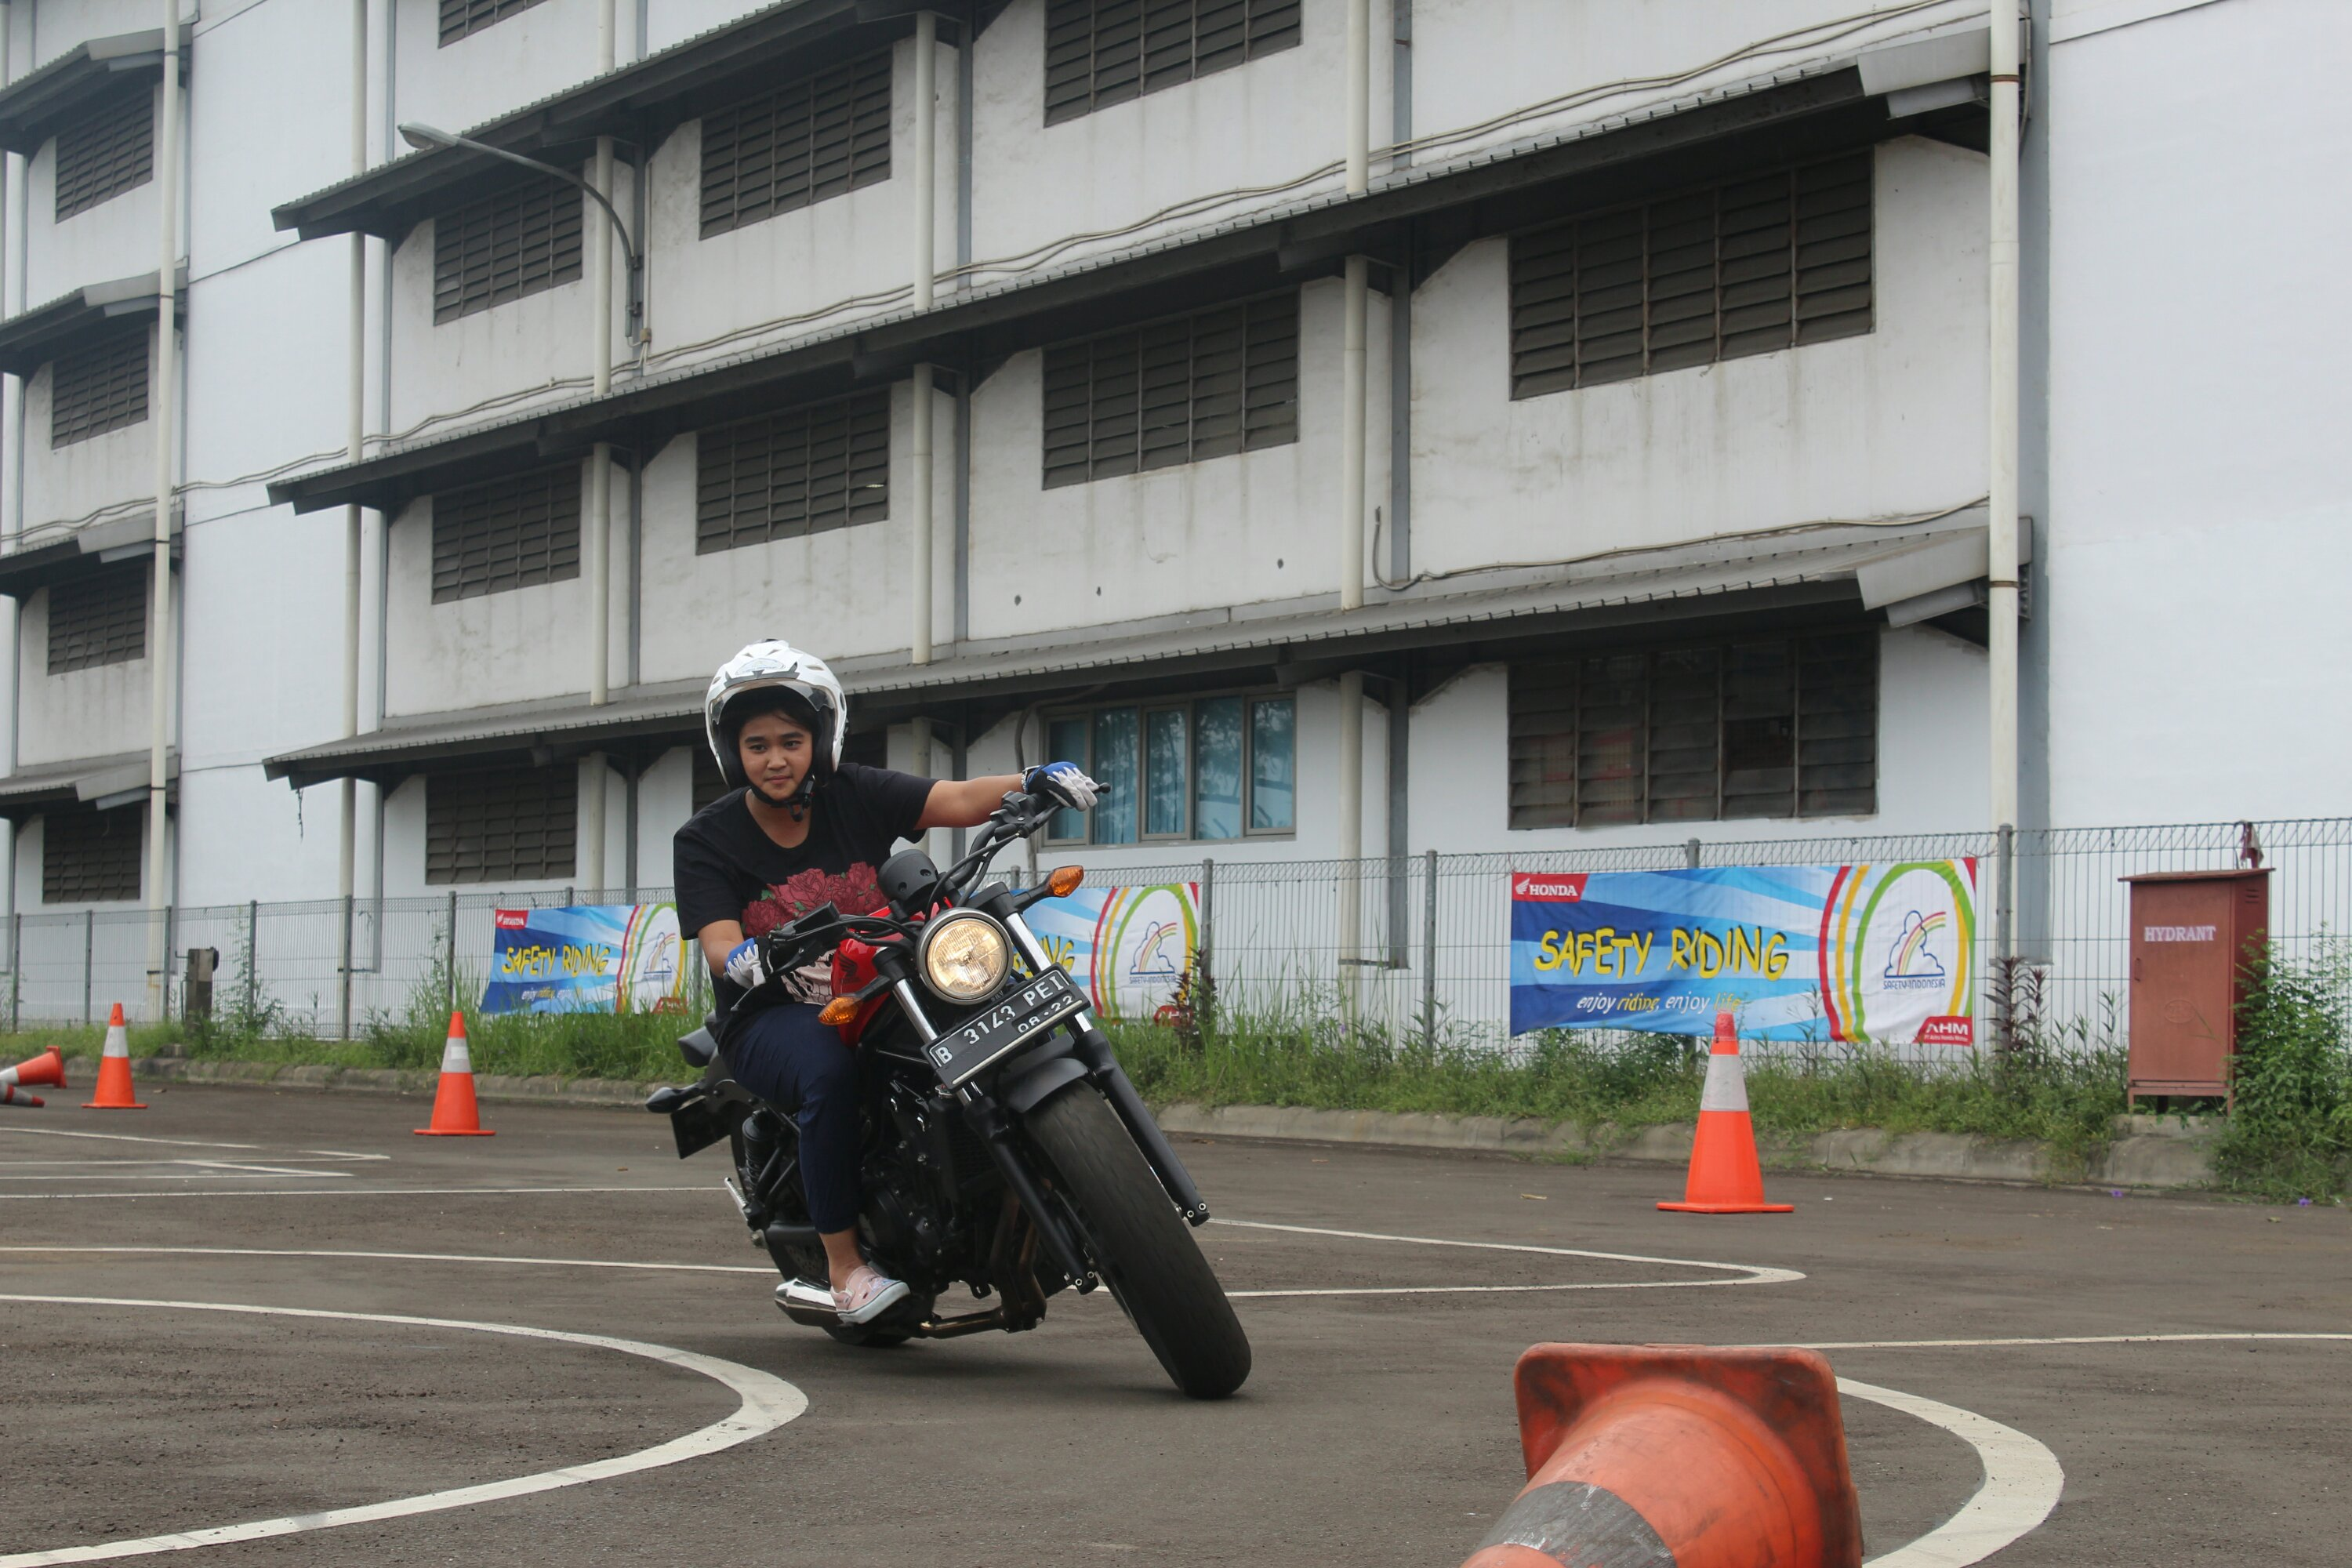 Wahana safety riding